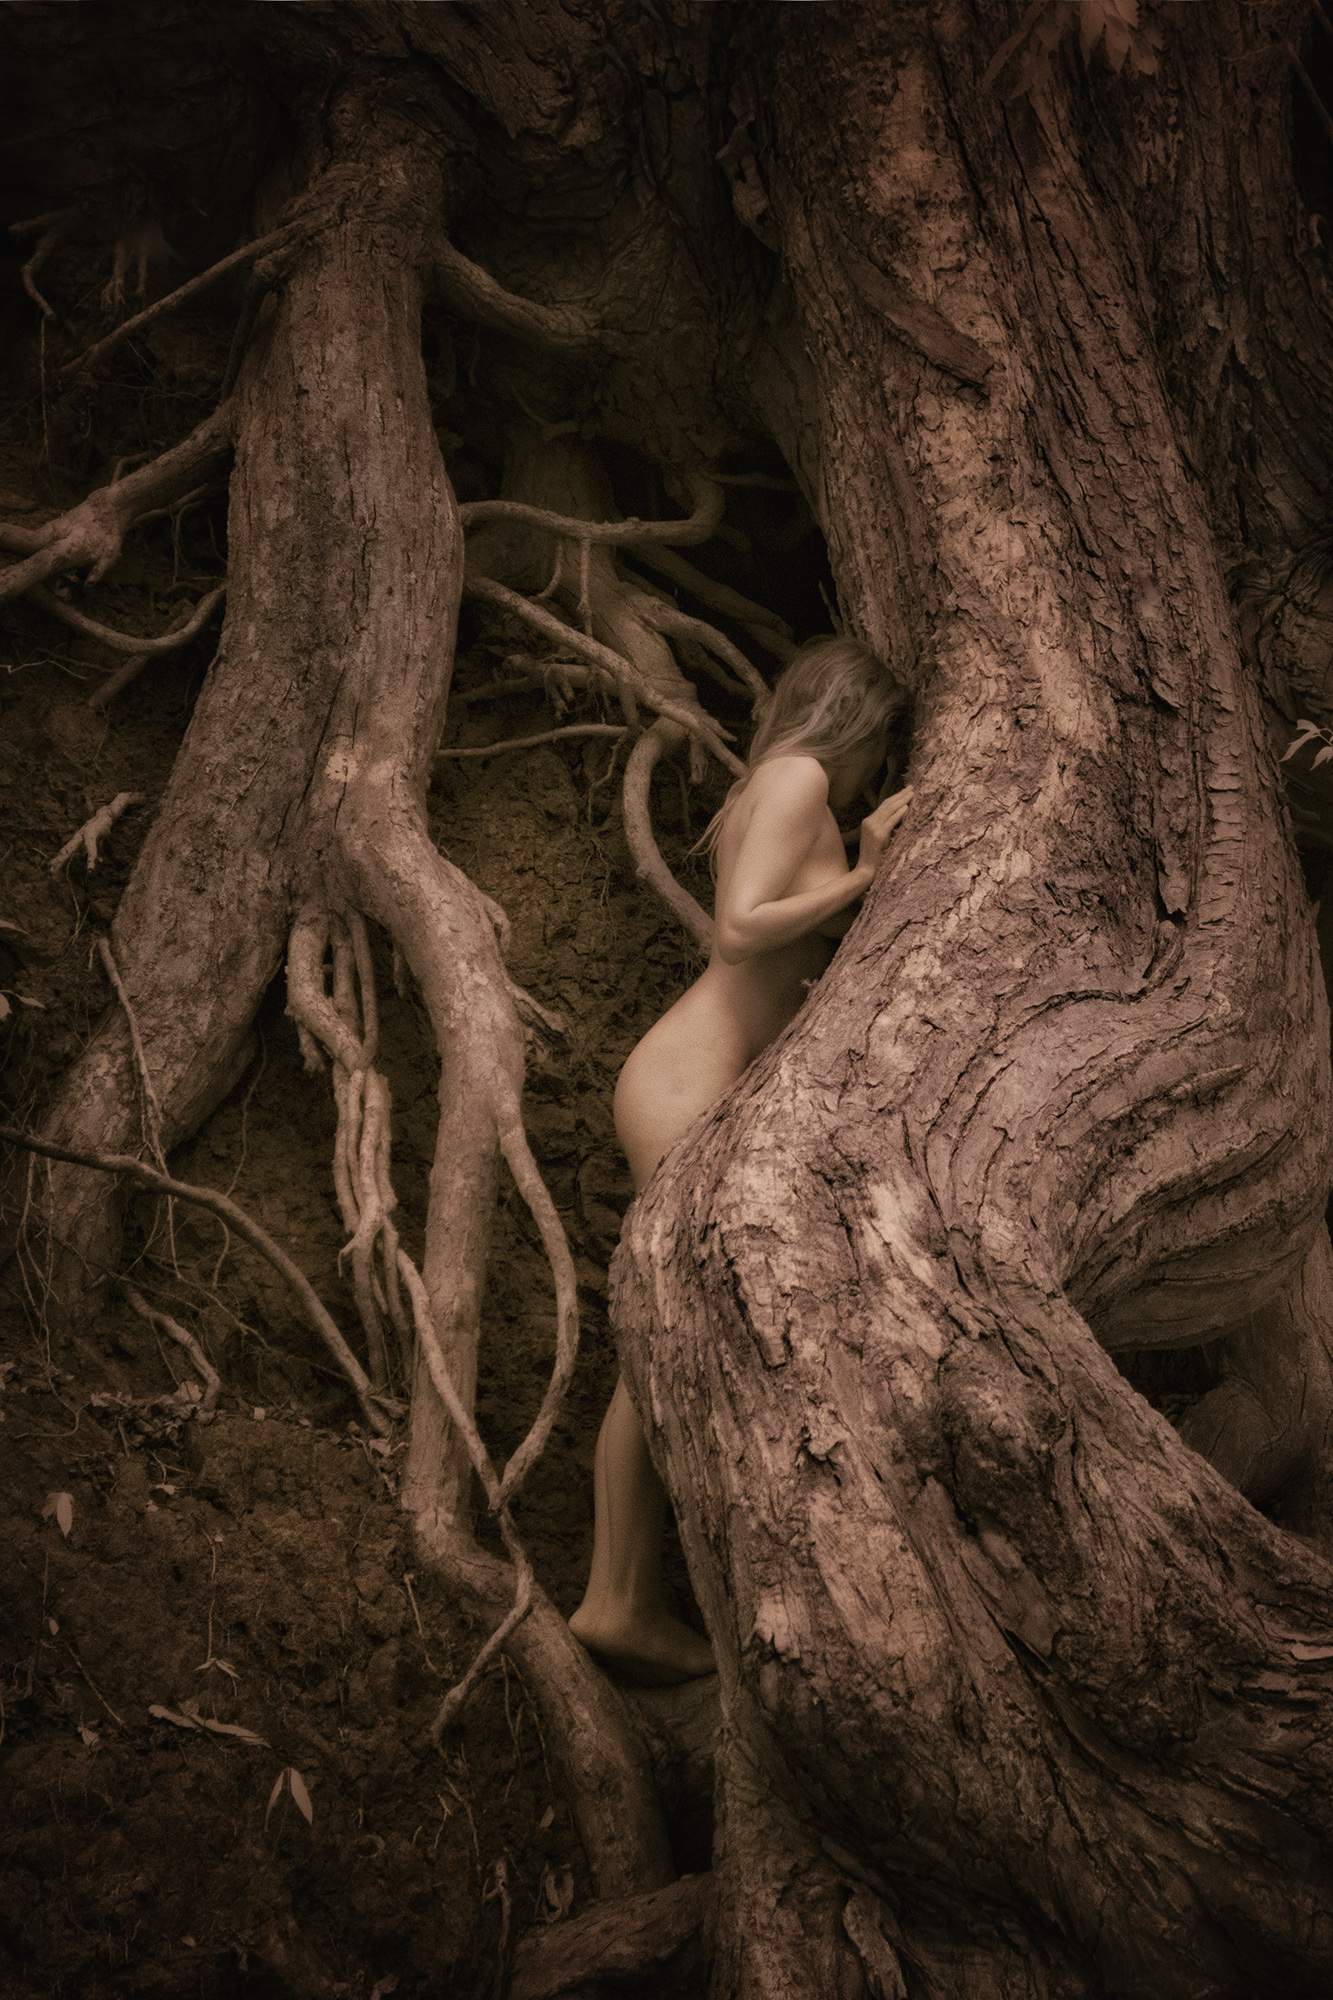 standing nude among the roots